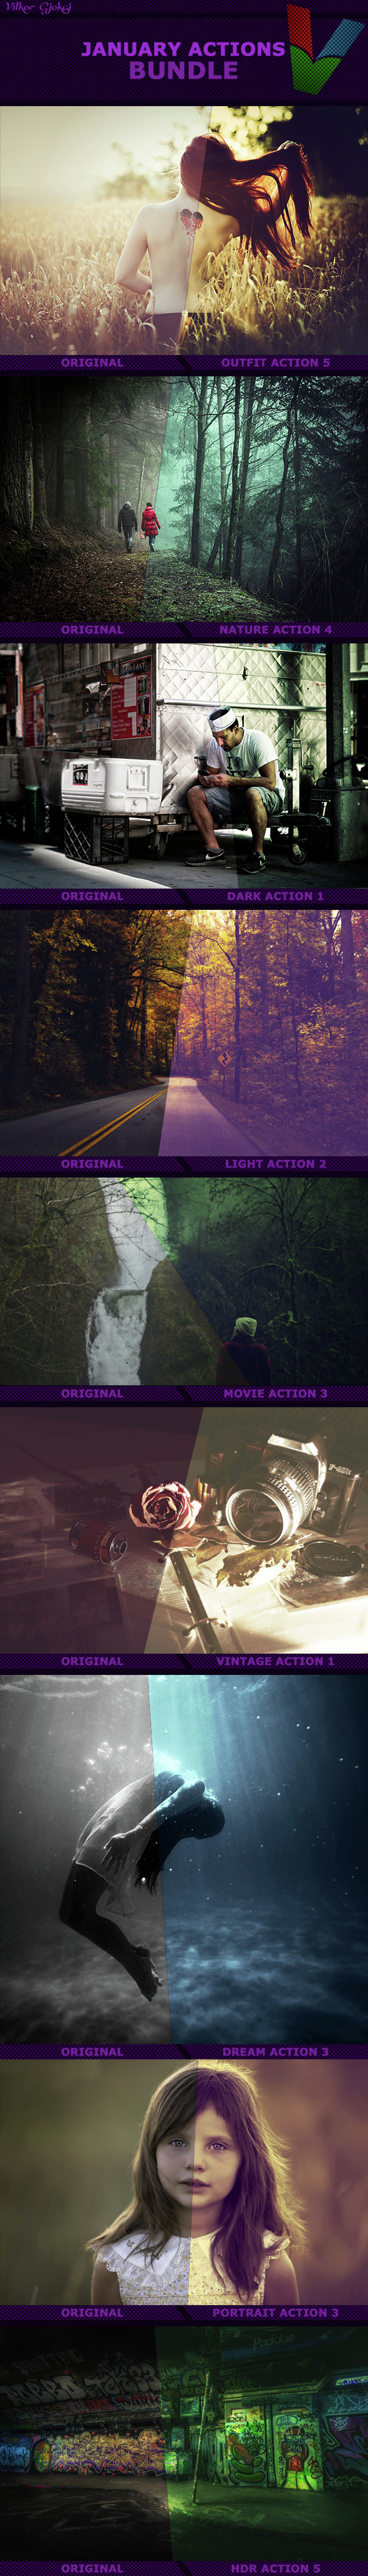 January Photoshop Actions Bundle - Photo Effects Actions